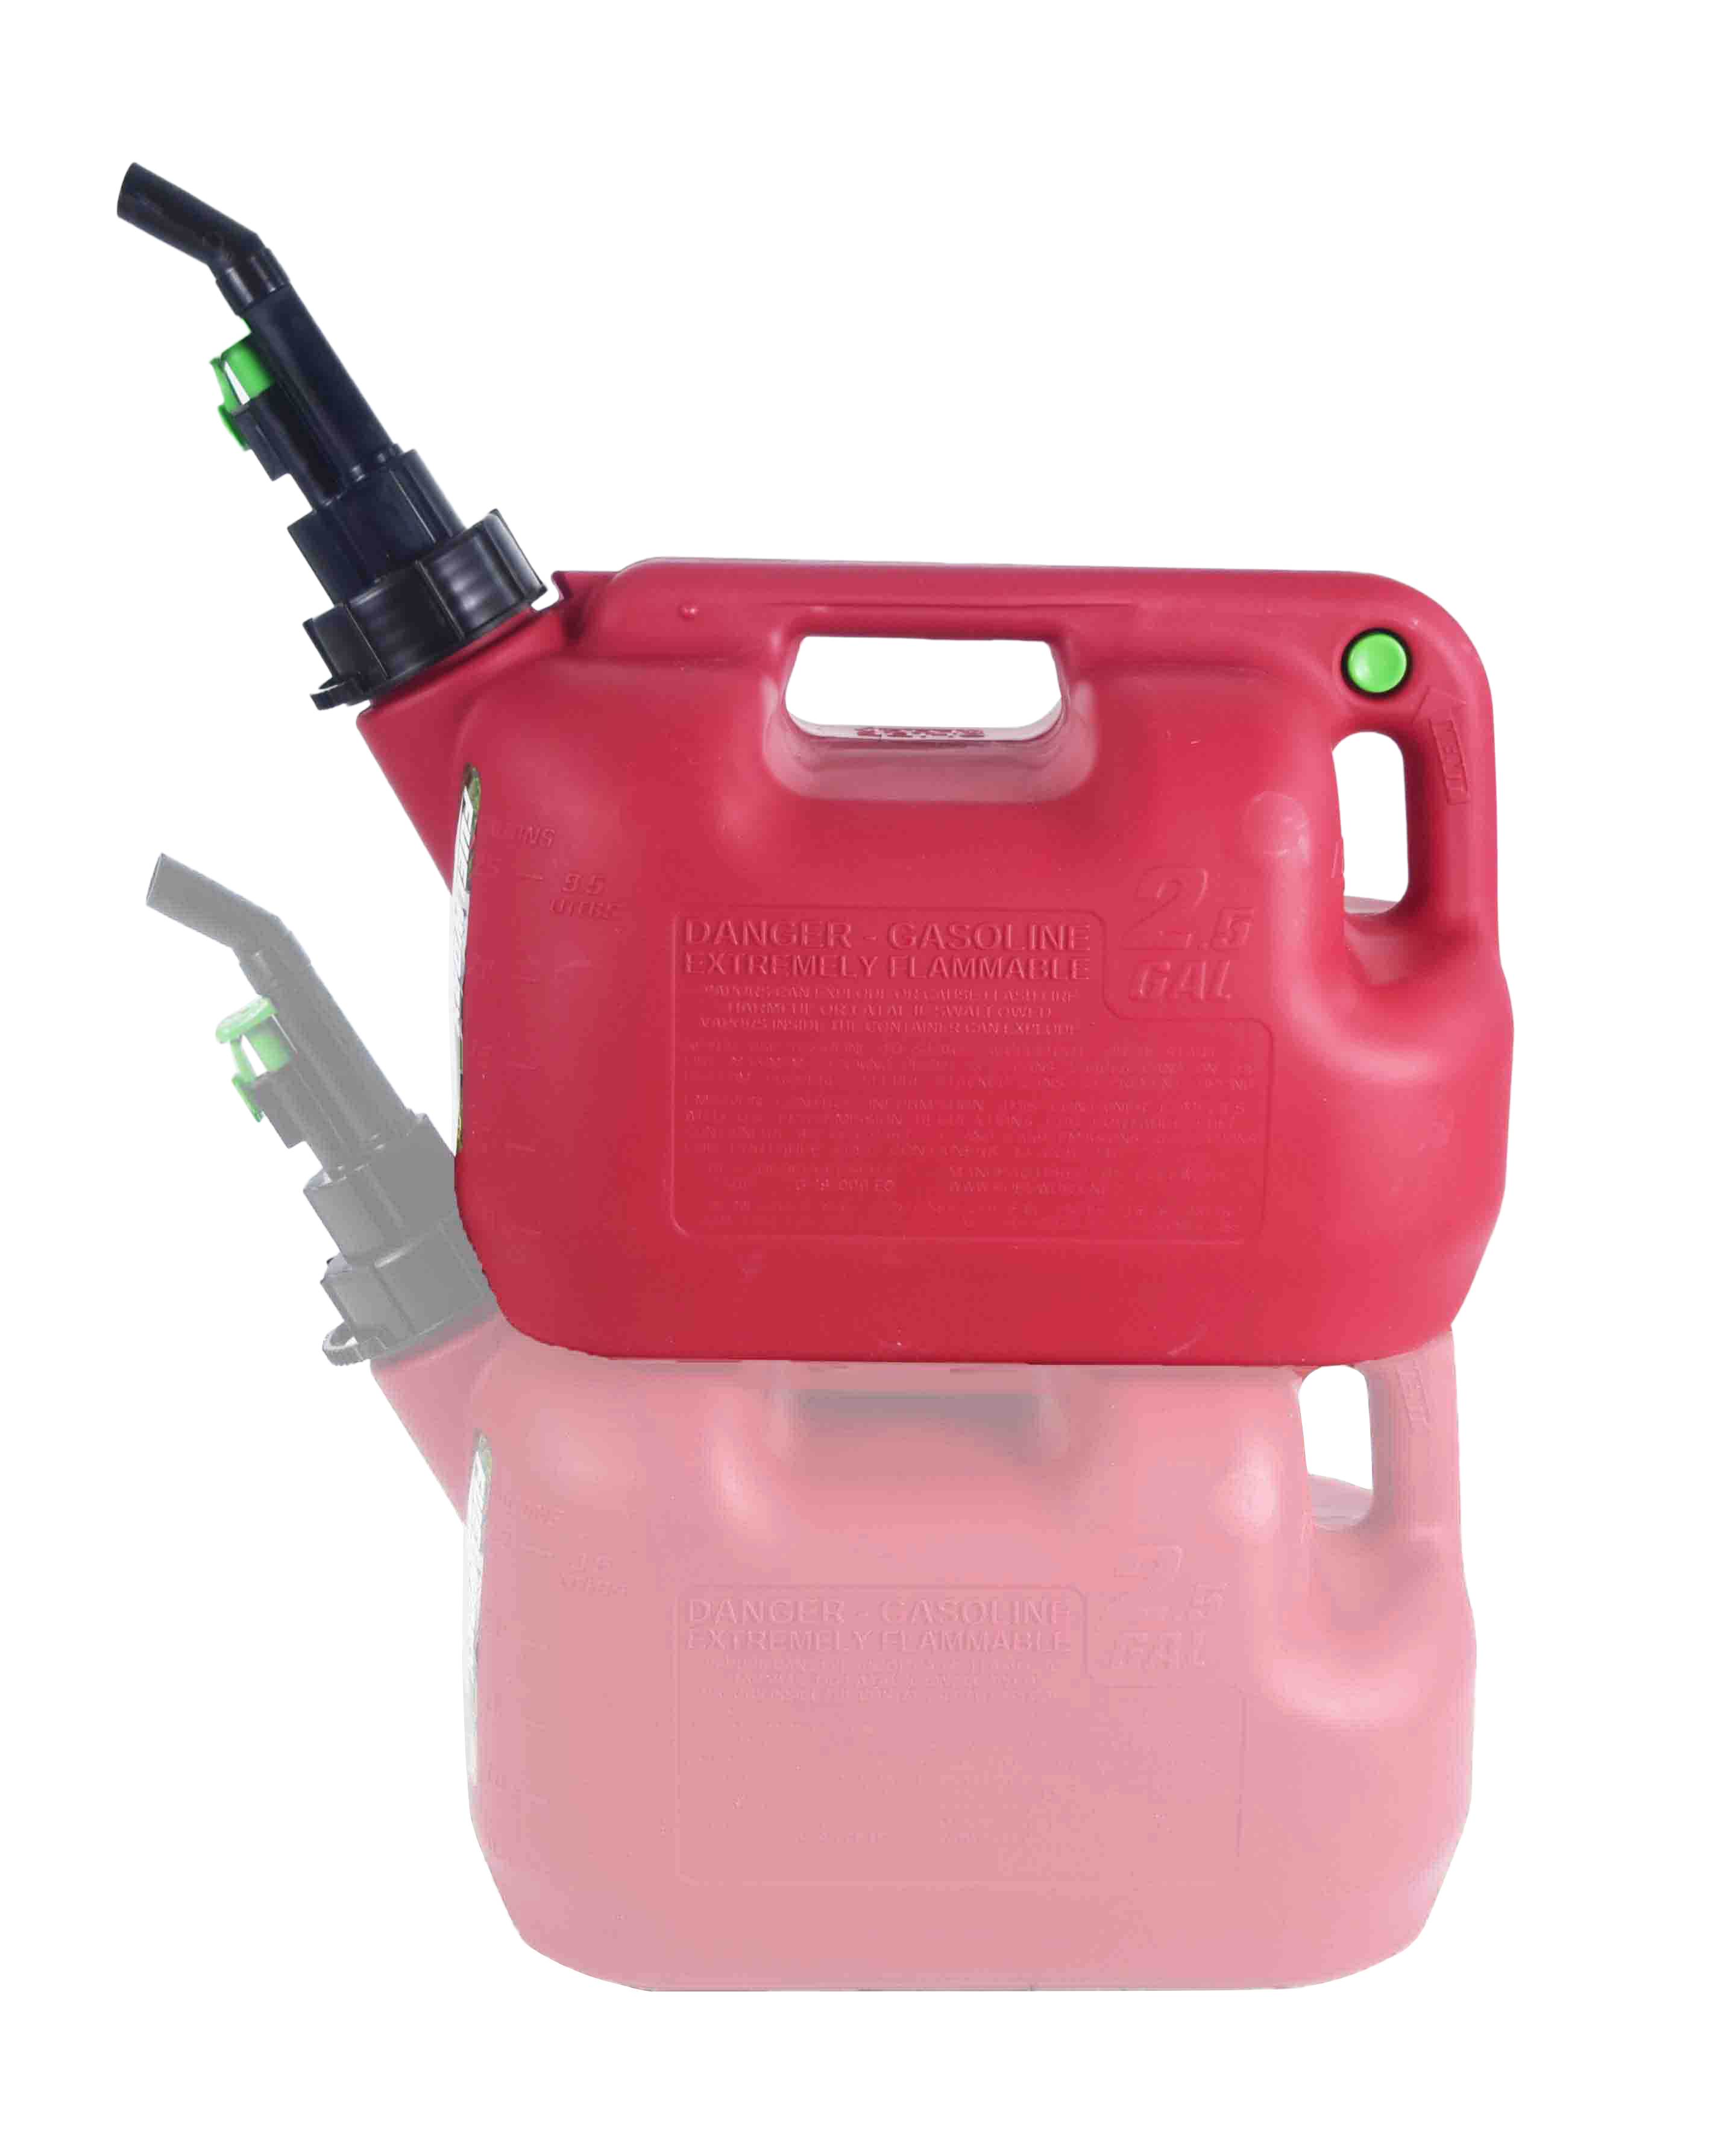 Fuelworx-Red-2.5-Gallon-Stackable-Fast-Pour-Gas-Fuel-Cans-CARB-Compliant-Made-in-The-USA-2.5-Gallon-Gas-Single-Can-image-1